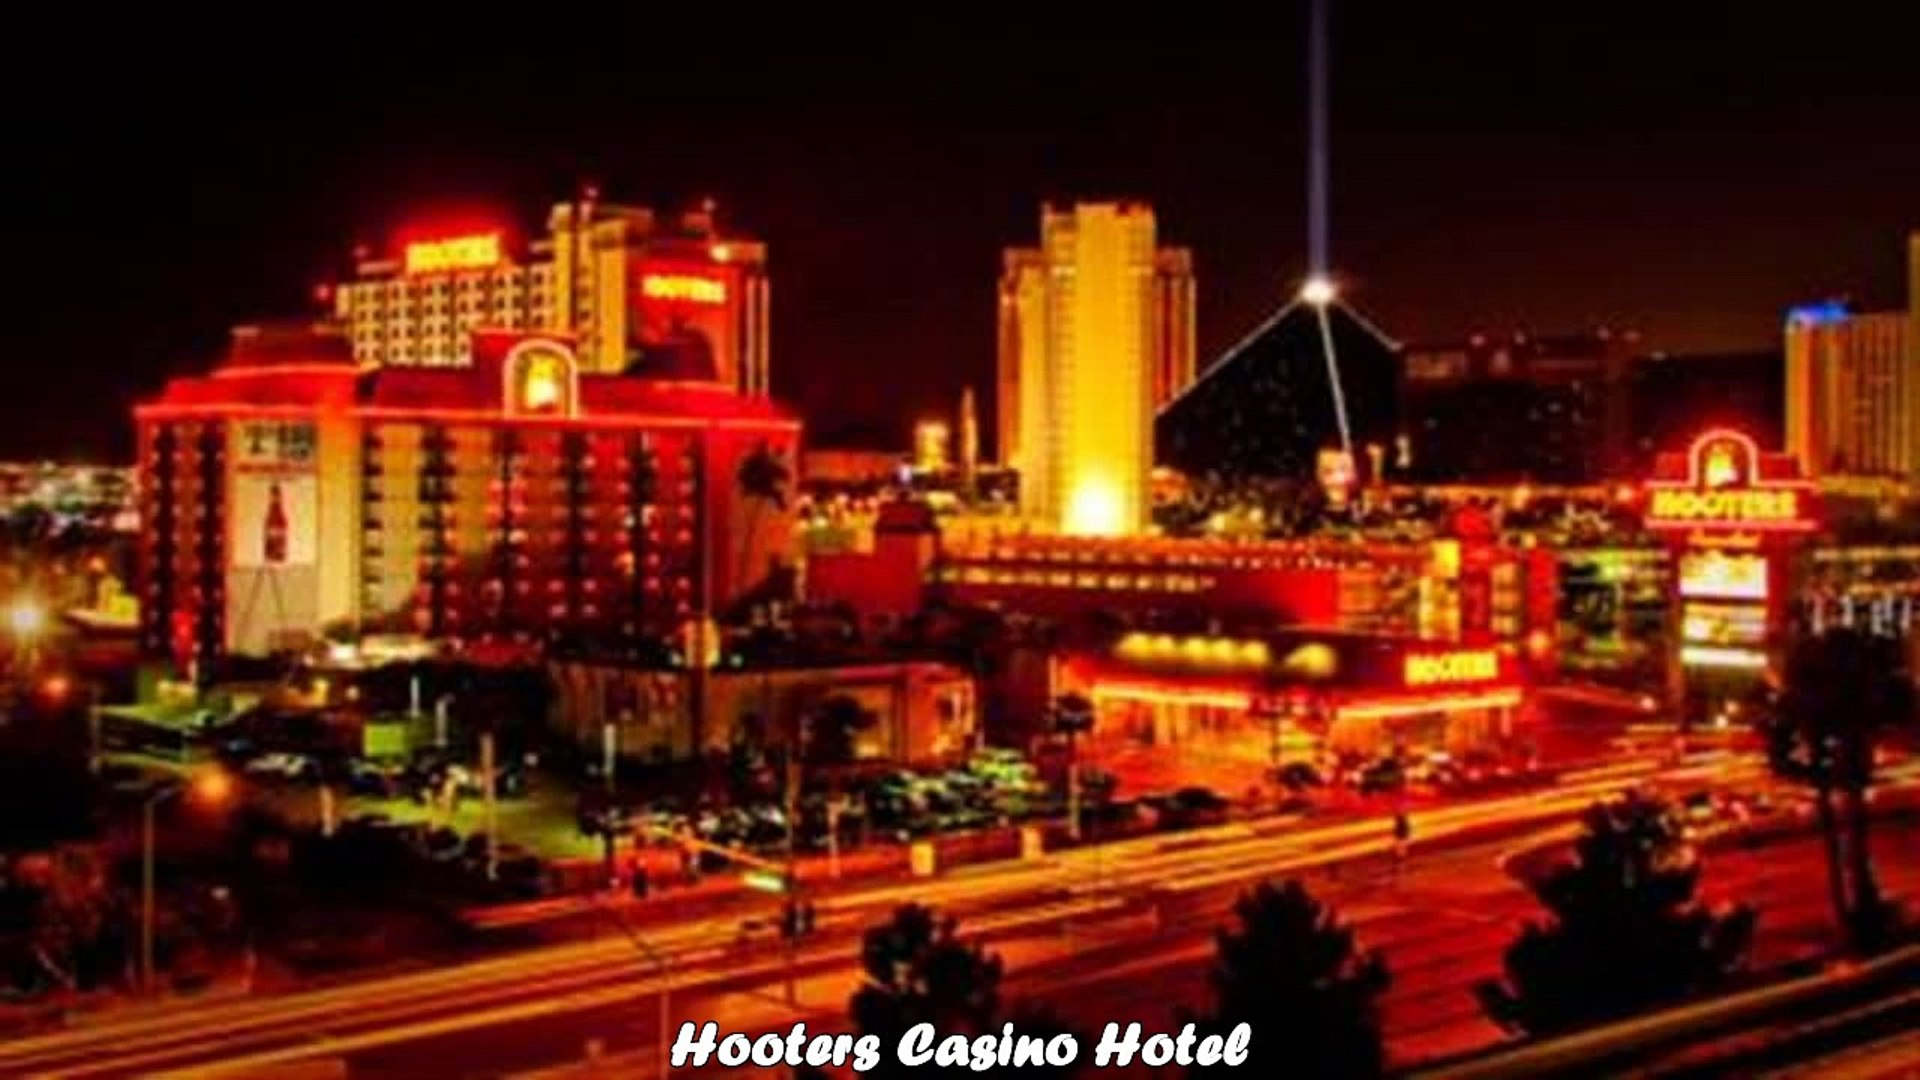 Hotels In Las Vegas Hooters Casino Hotel Nevada Video Dailymotion